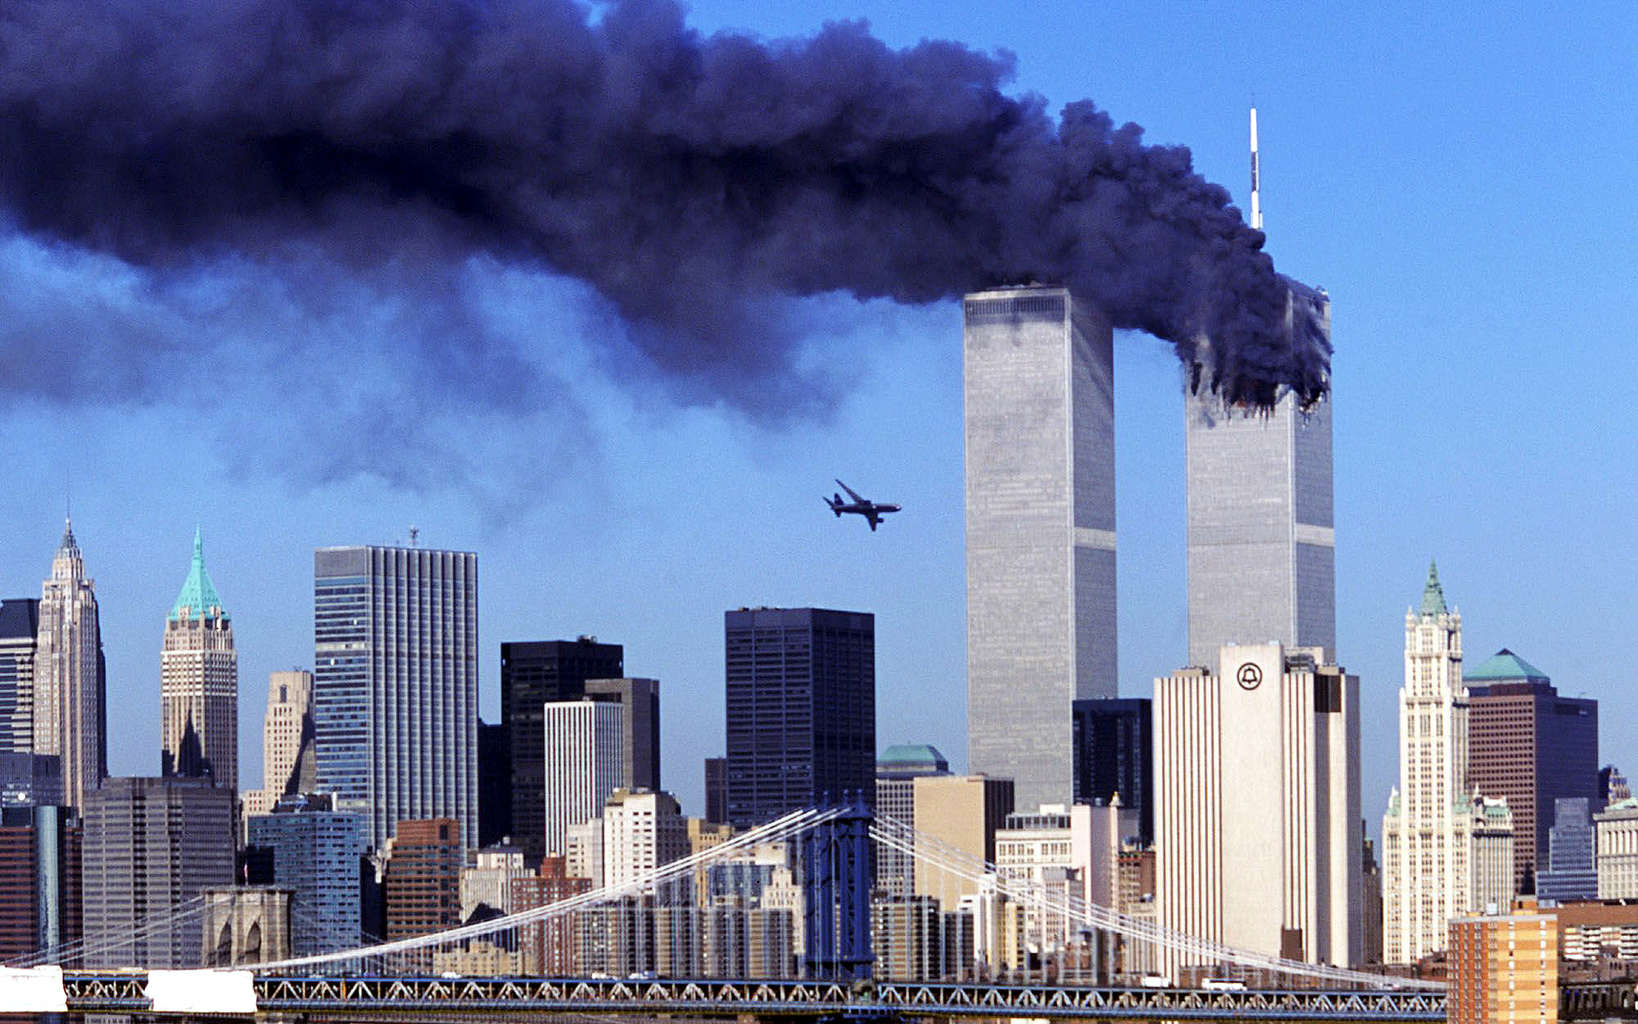 Flying on 9/11 15 years ago…